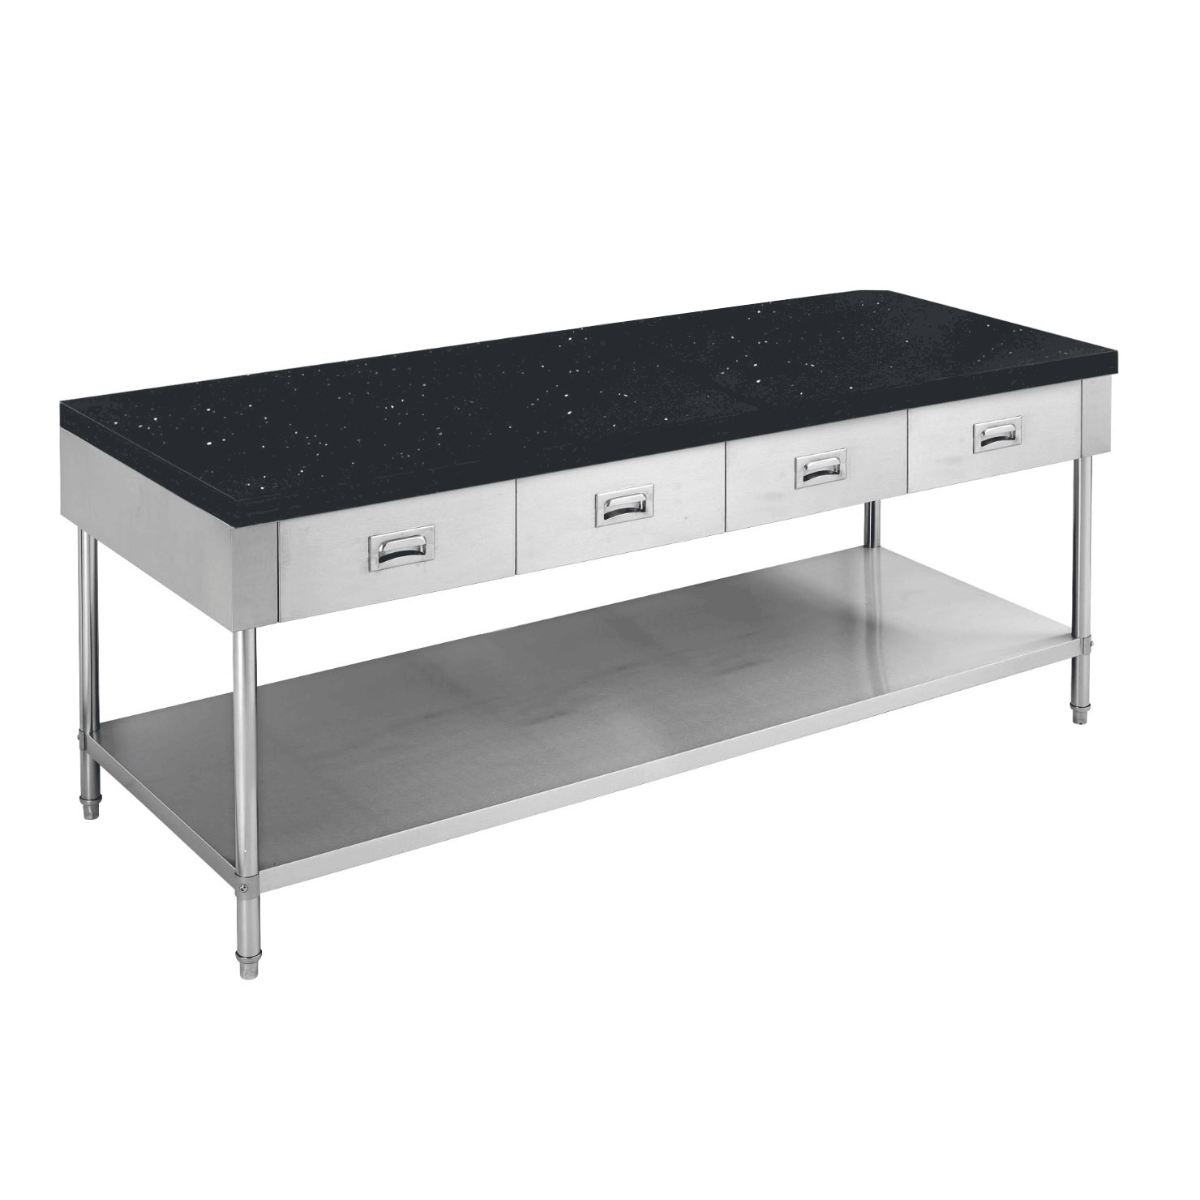 Stone Top Stainless Steel Bench